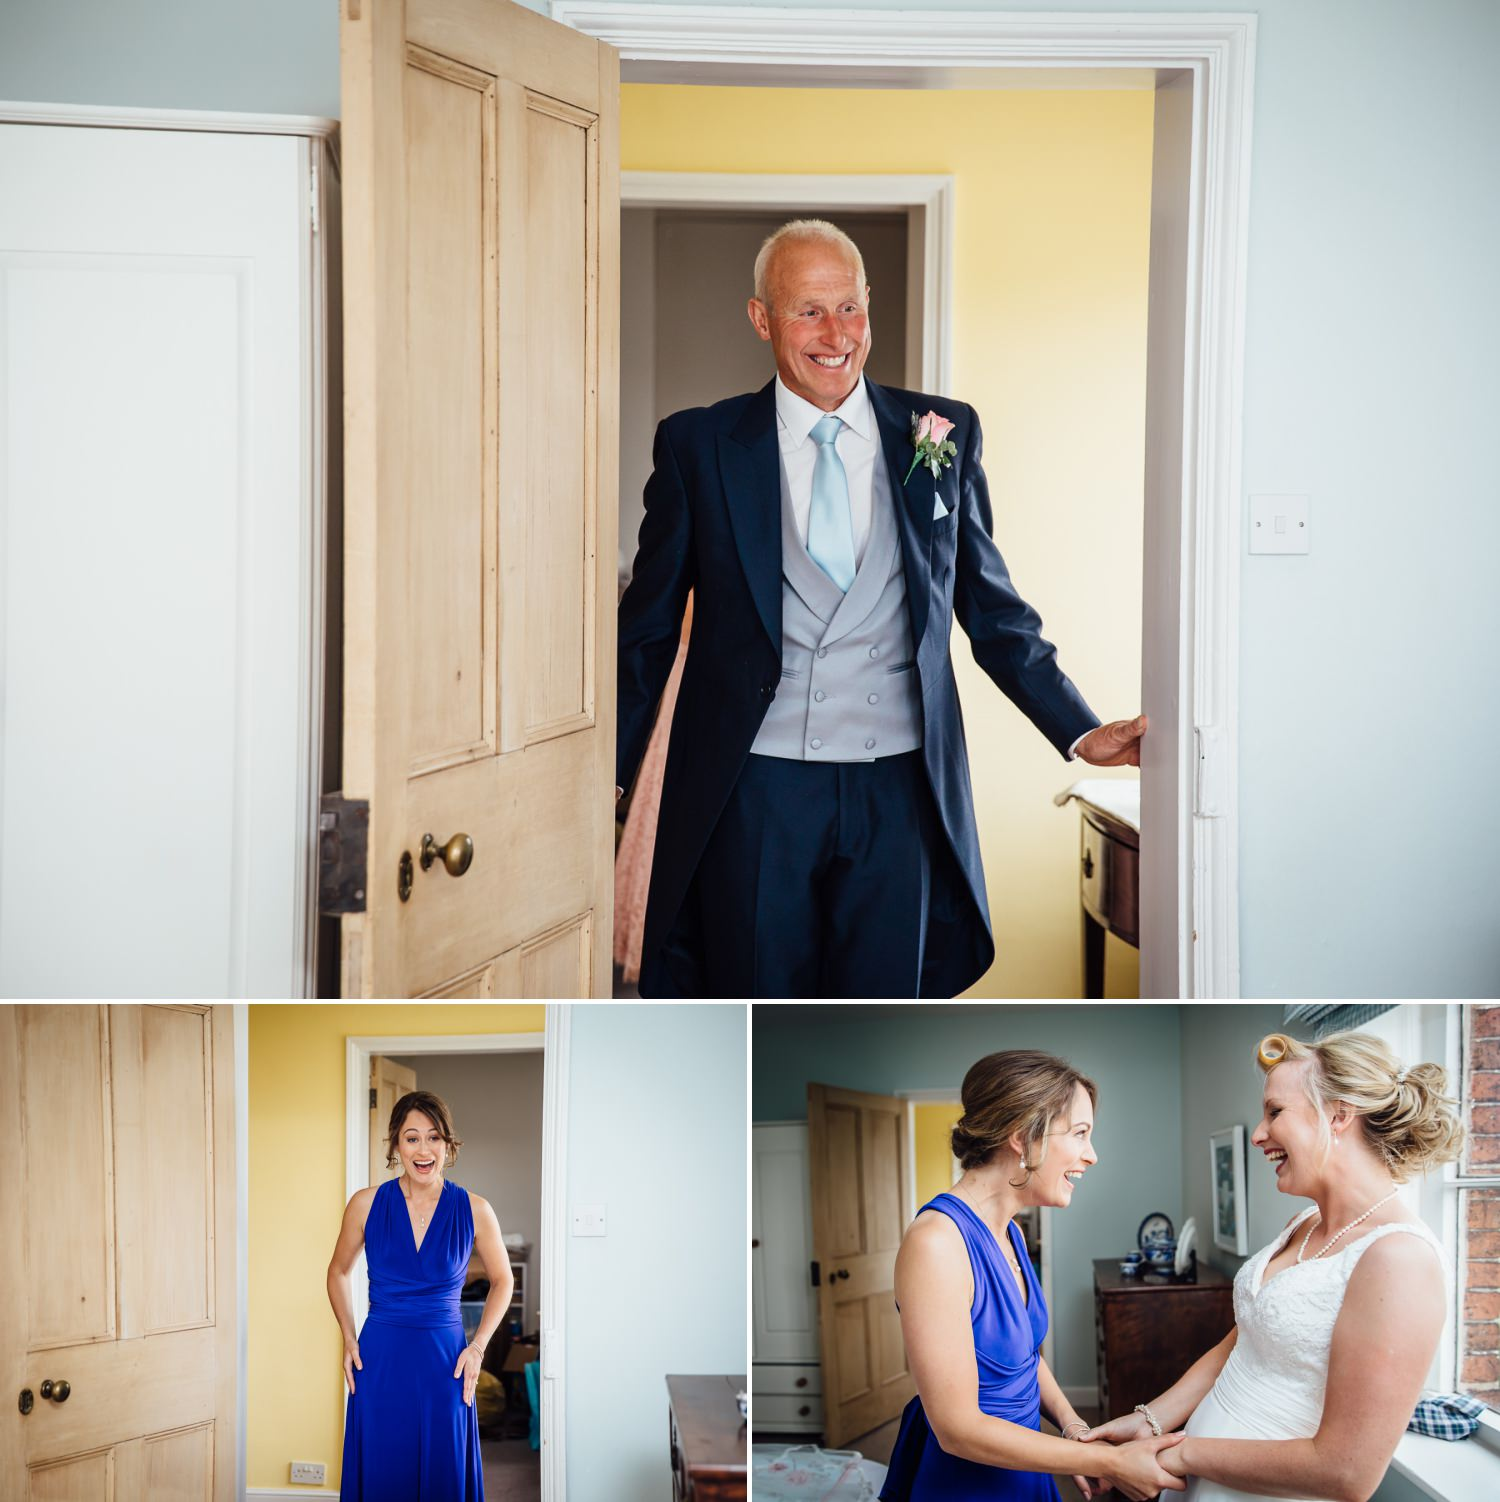 Father of the bride at a farm wedding in Macclesfield